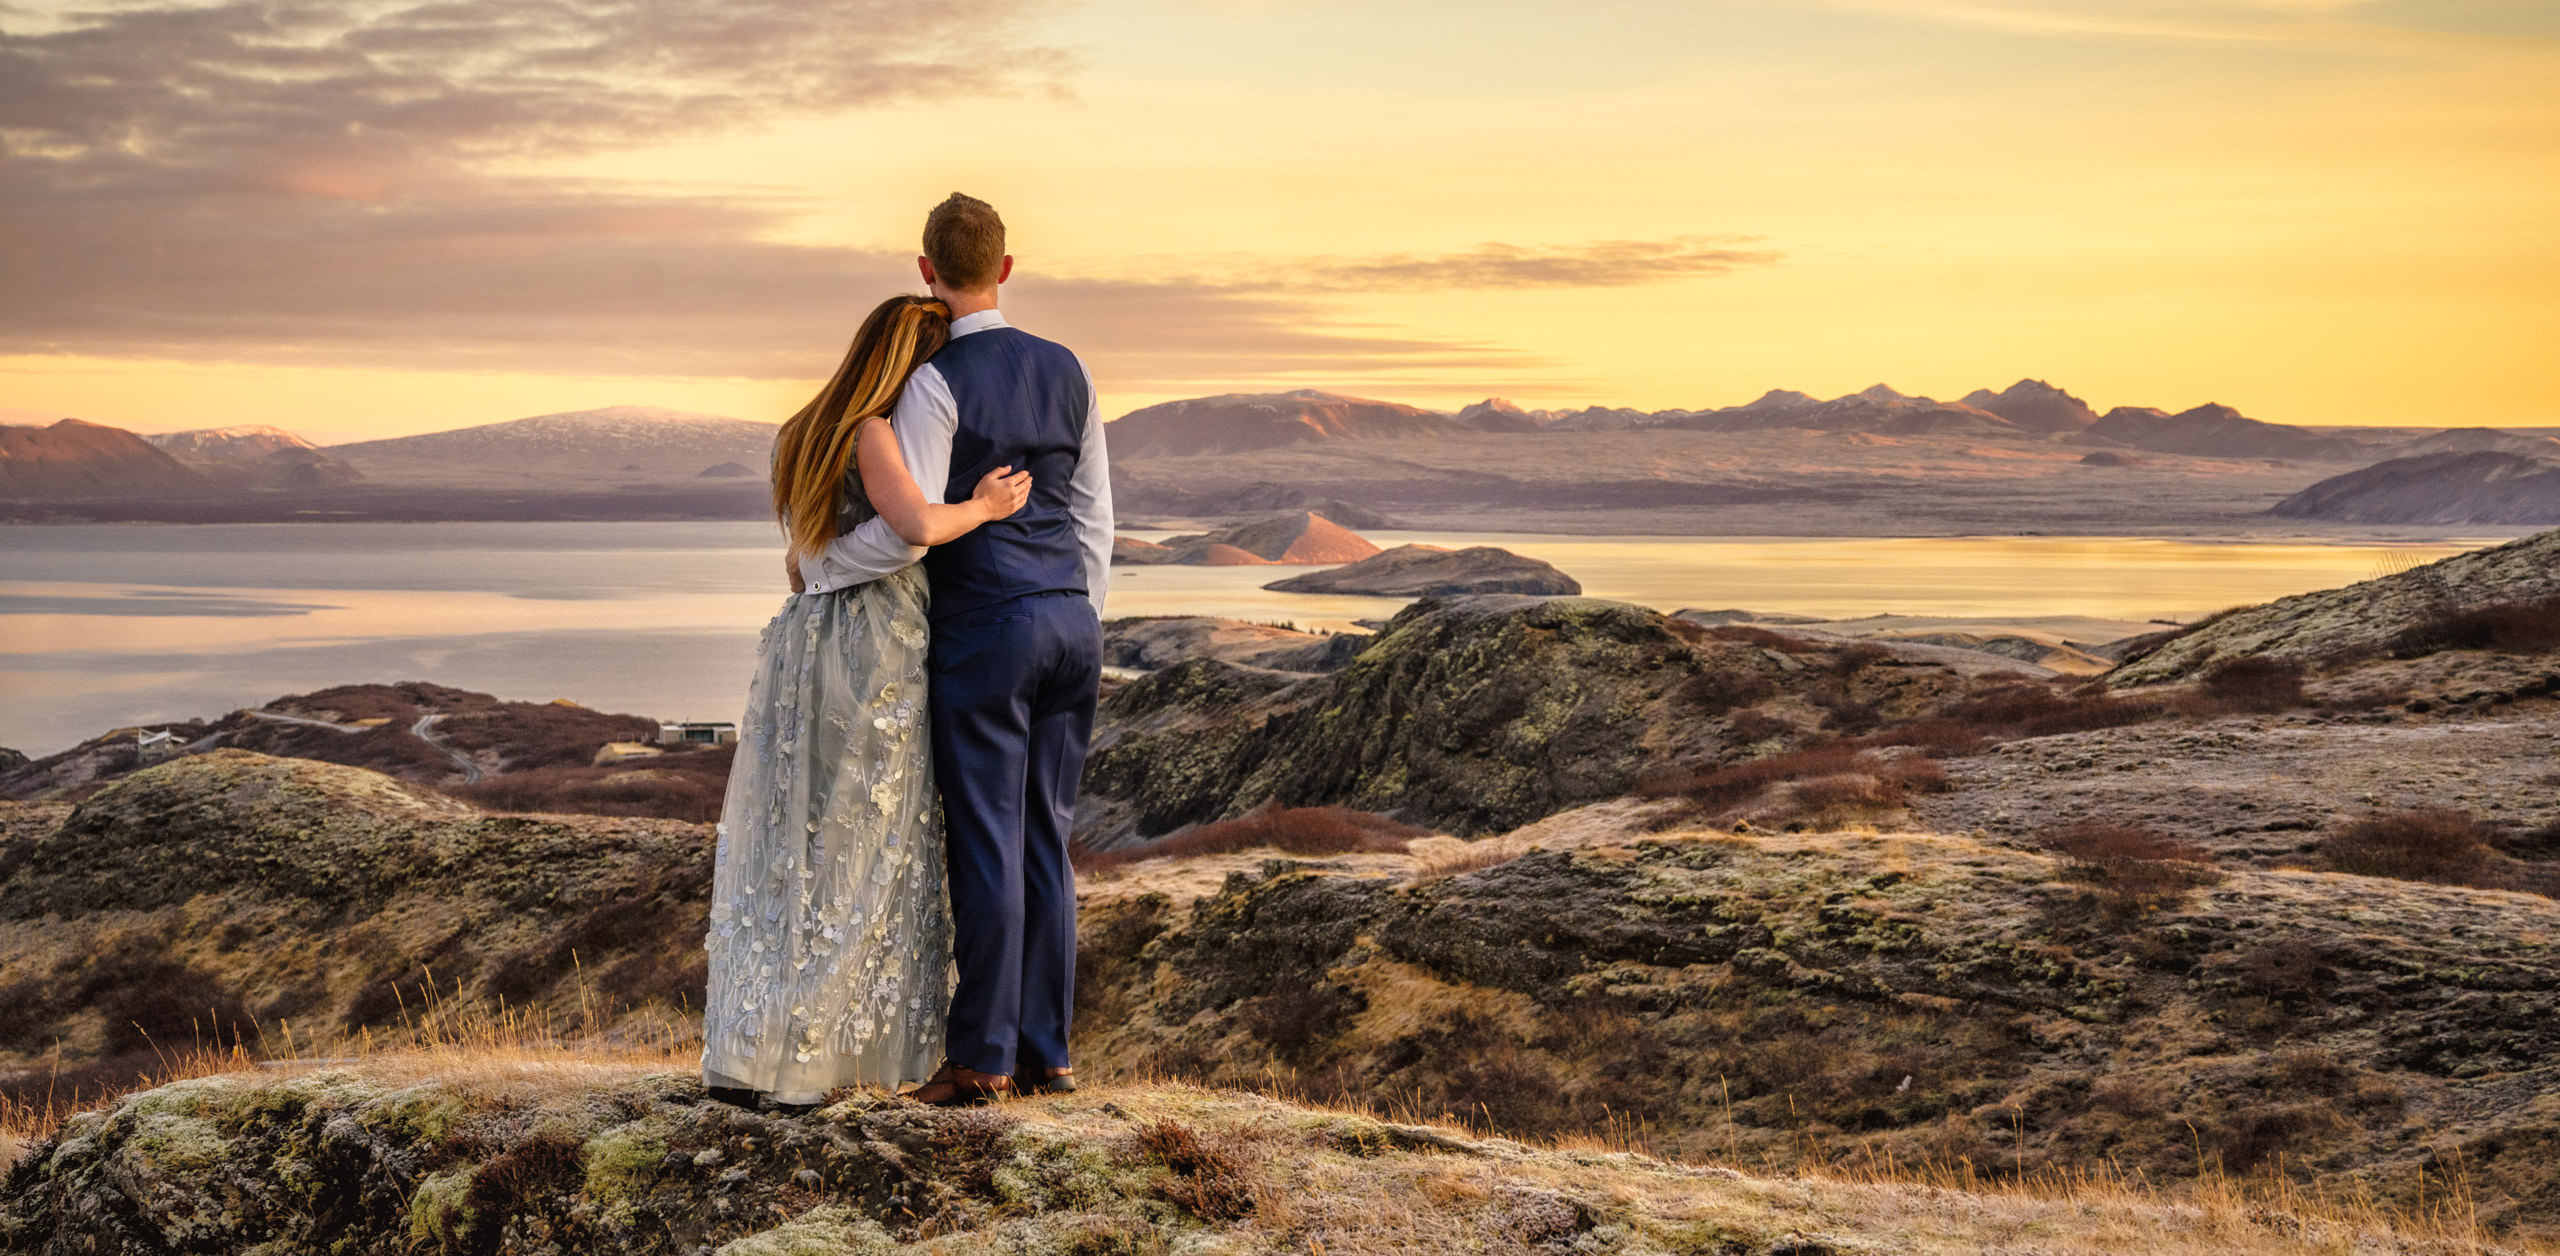 Destination wedding photography iceland bride and groom with landscape at sunrise